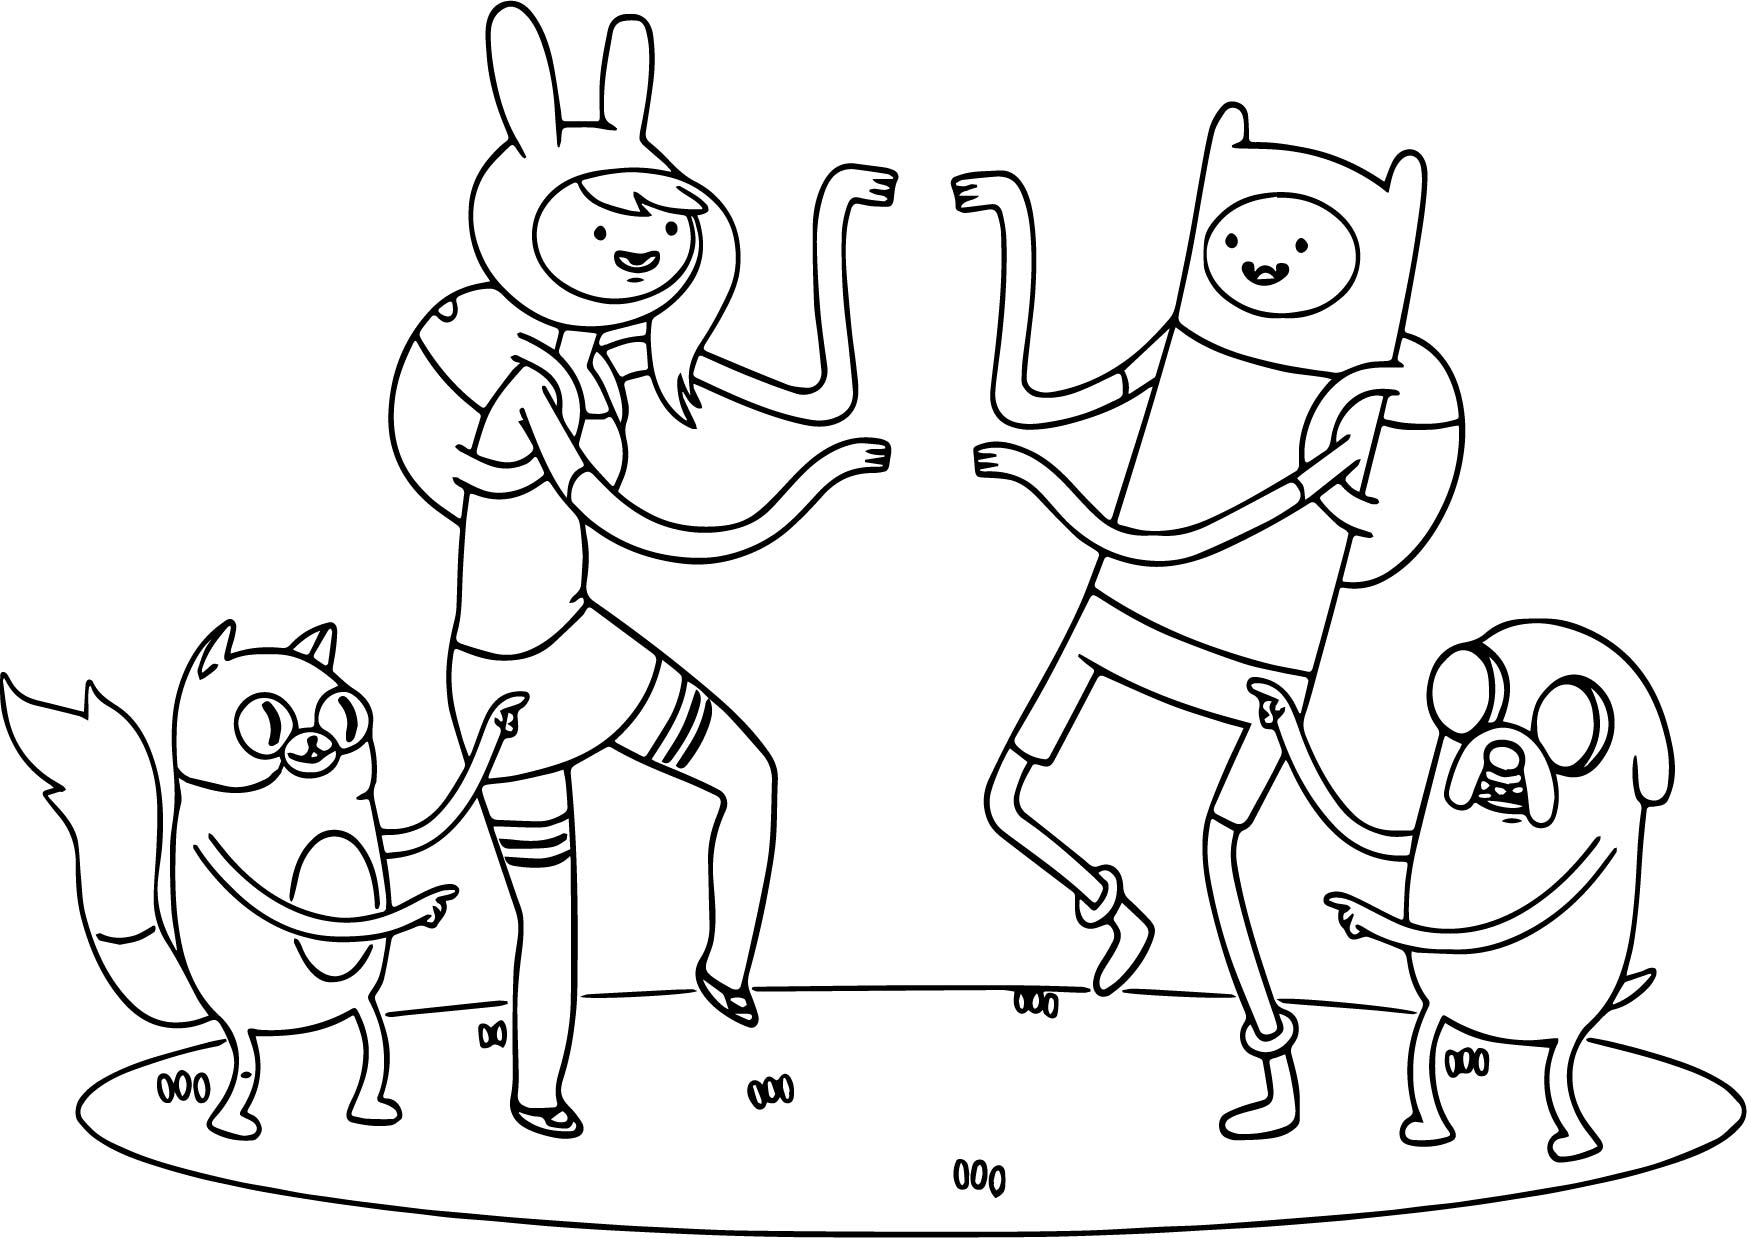 Threadless Adventure Time Team Dance Coloring Page | Wecoloringpage.com